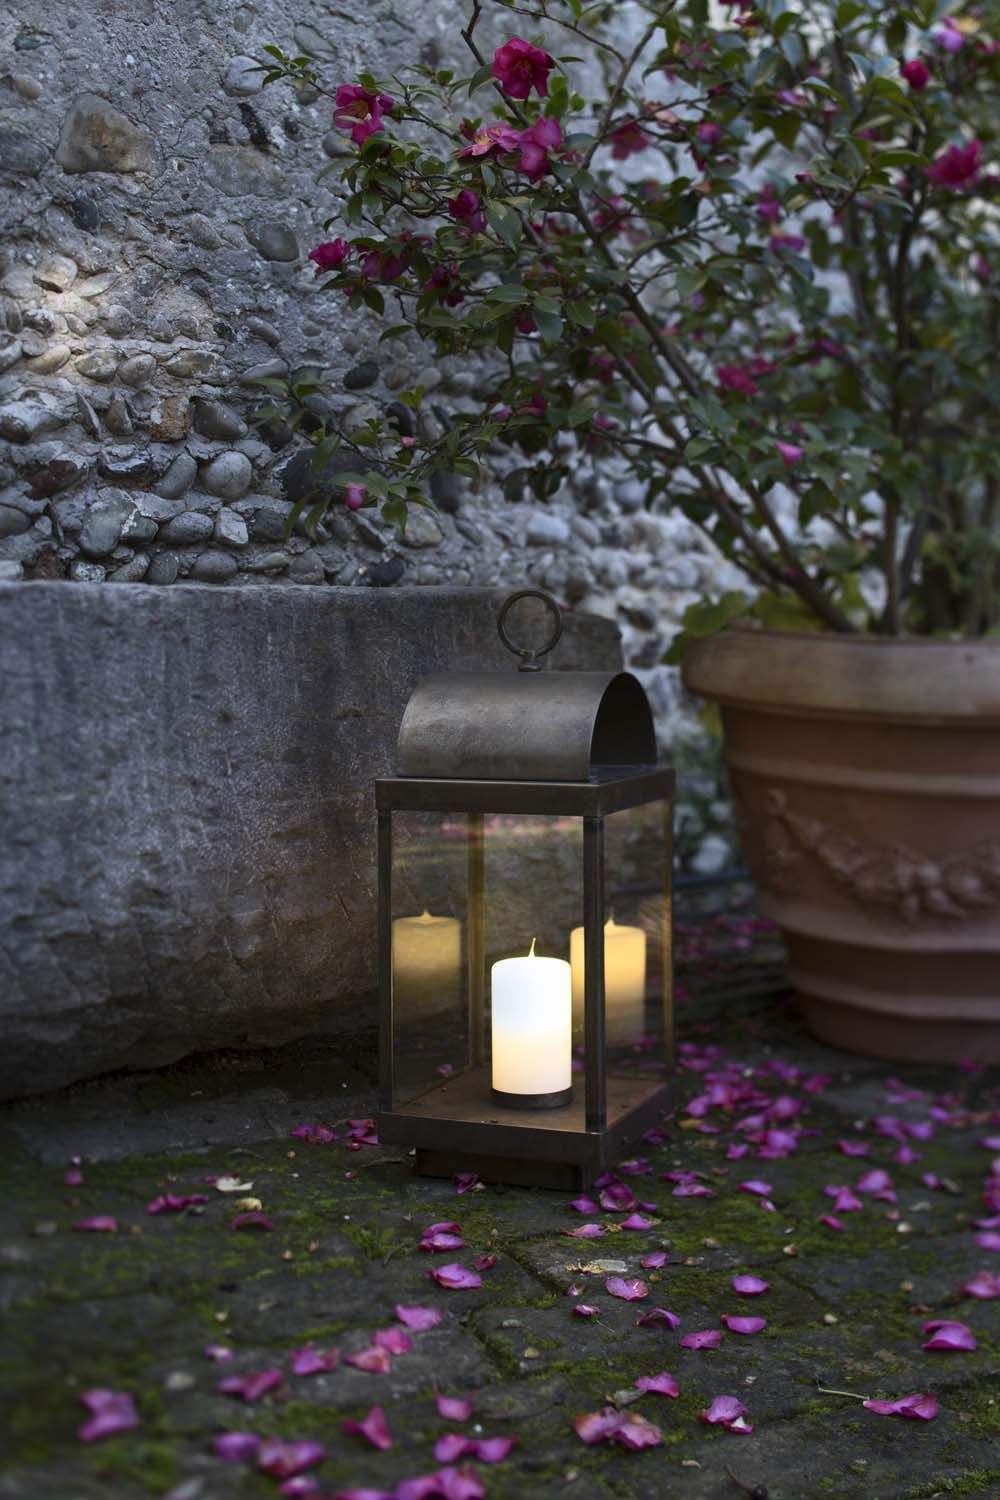 Looking For Unique French Outdoor Lights Christophe Living Offer A Great Range Of Louis Country And Provincial Style